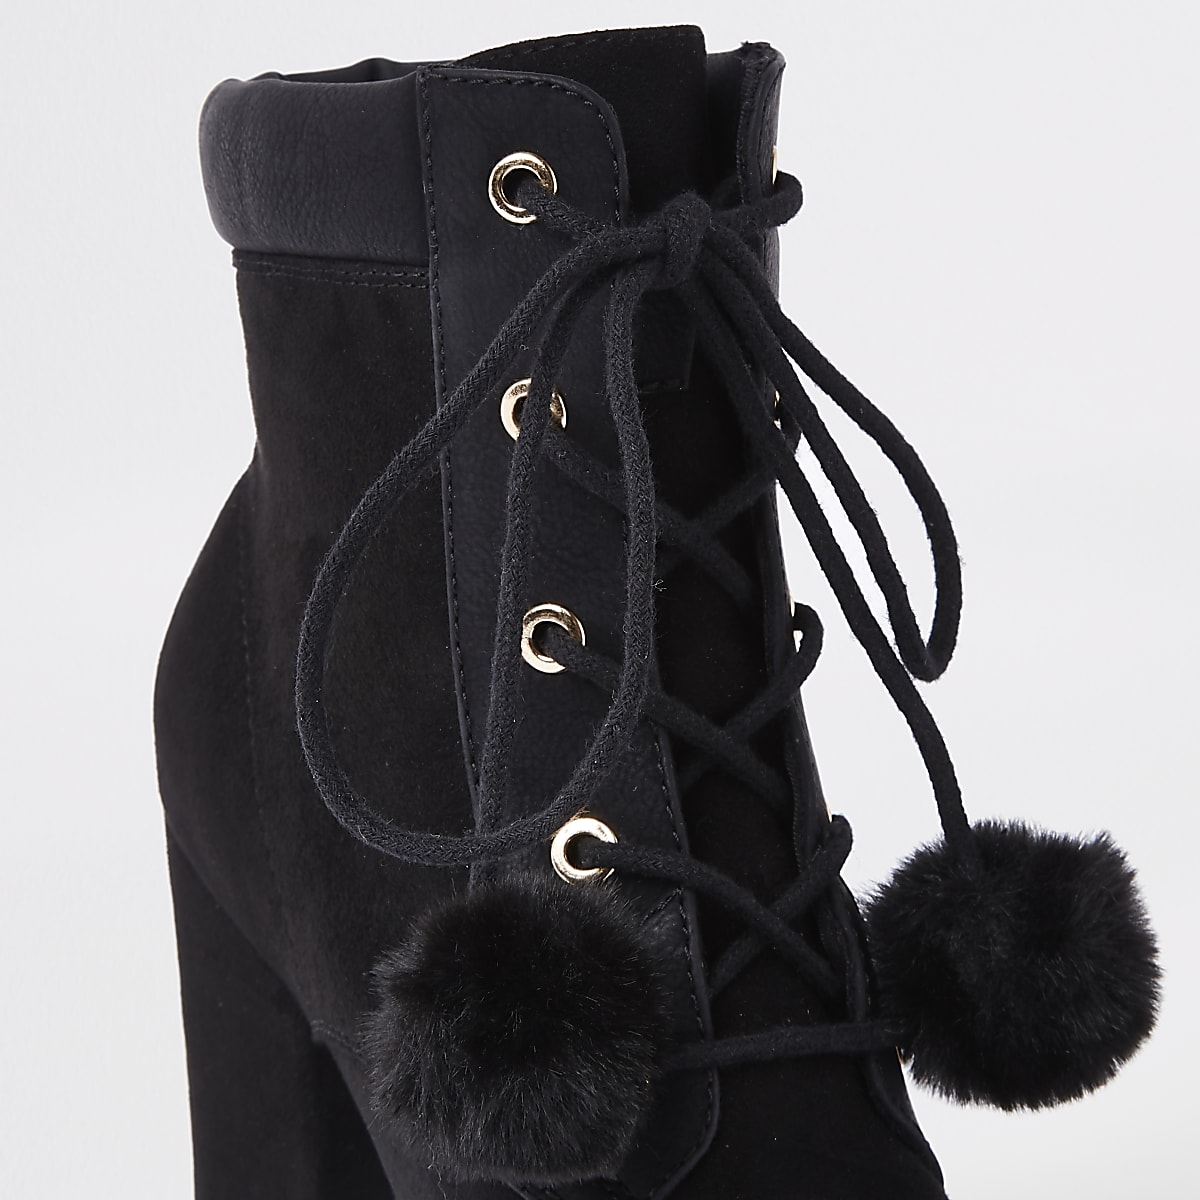 7a58924d7f31 Black lace-up pom pom chunky ankle boots - Boots - Shoes   Boots - women